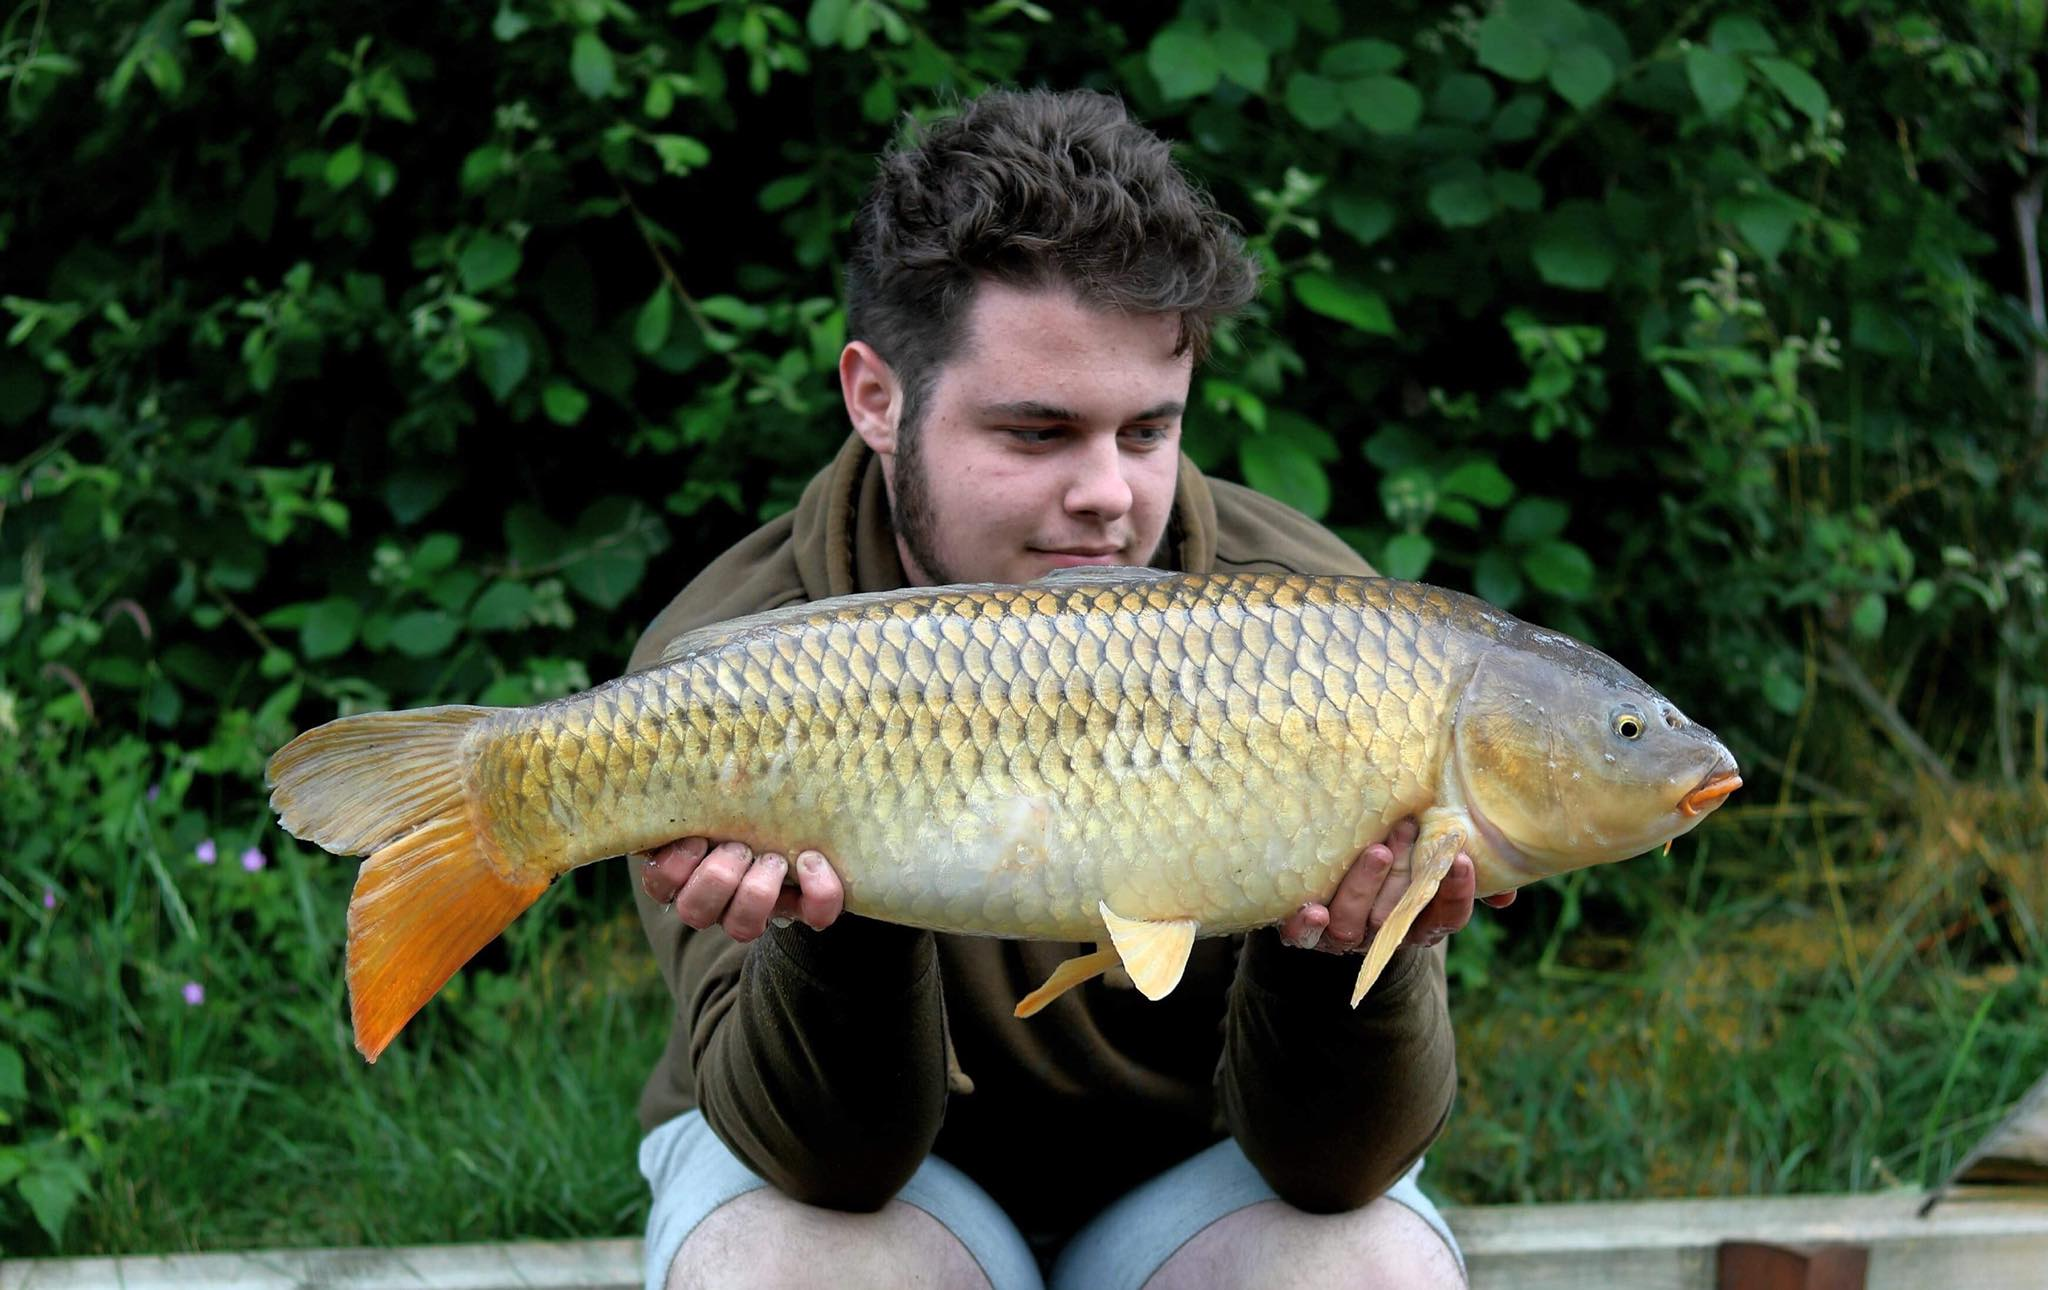 Carp Fishing Archives - Page 21 of 55 - North Devon Angling